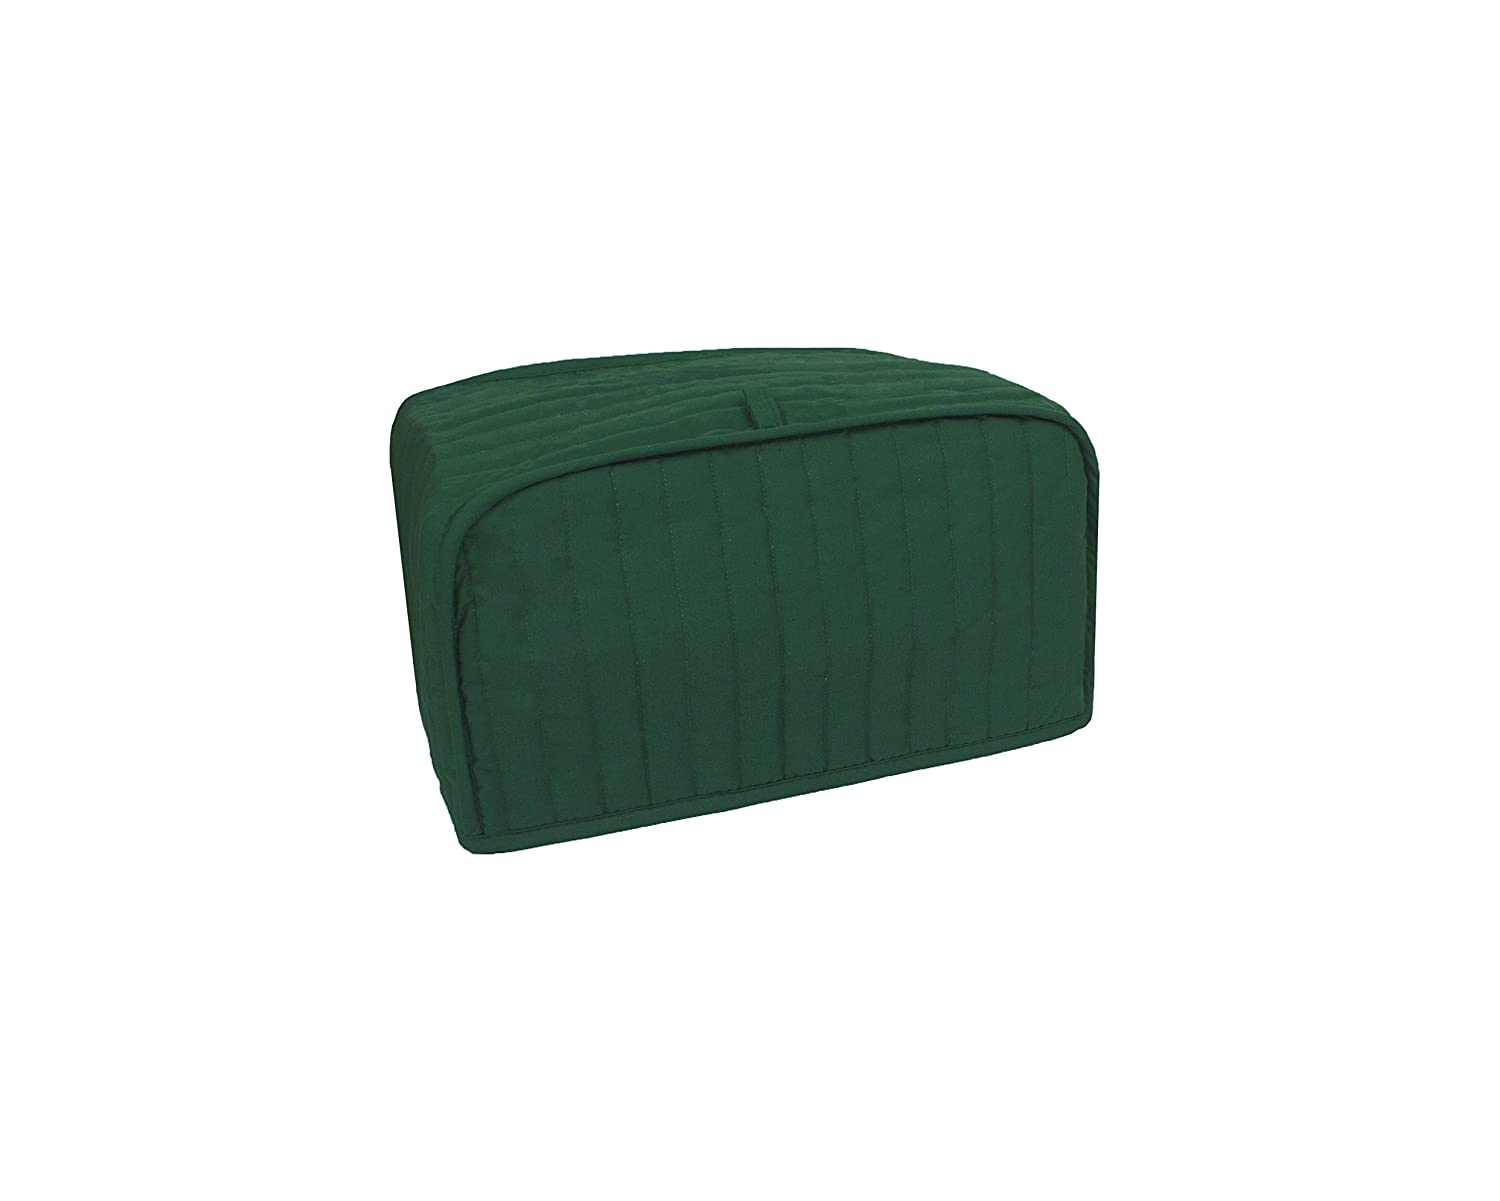 RITZ Polyester / Cotton Quilted Toaster Oven Broiler Appliance Cover, Dust and Fingerprint Protection, Machine Washable, Dark Green